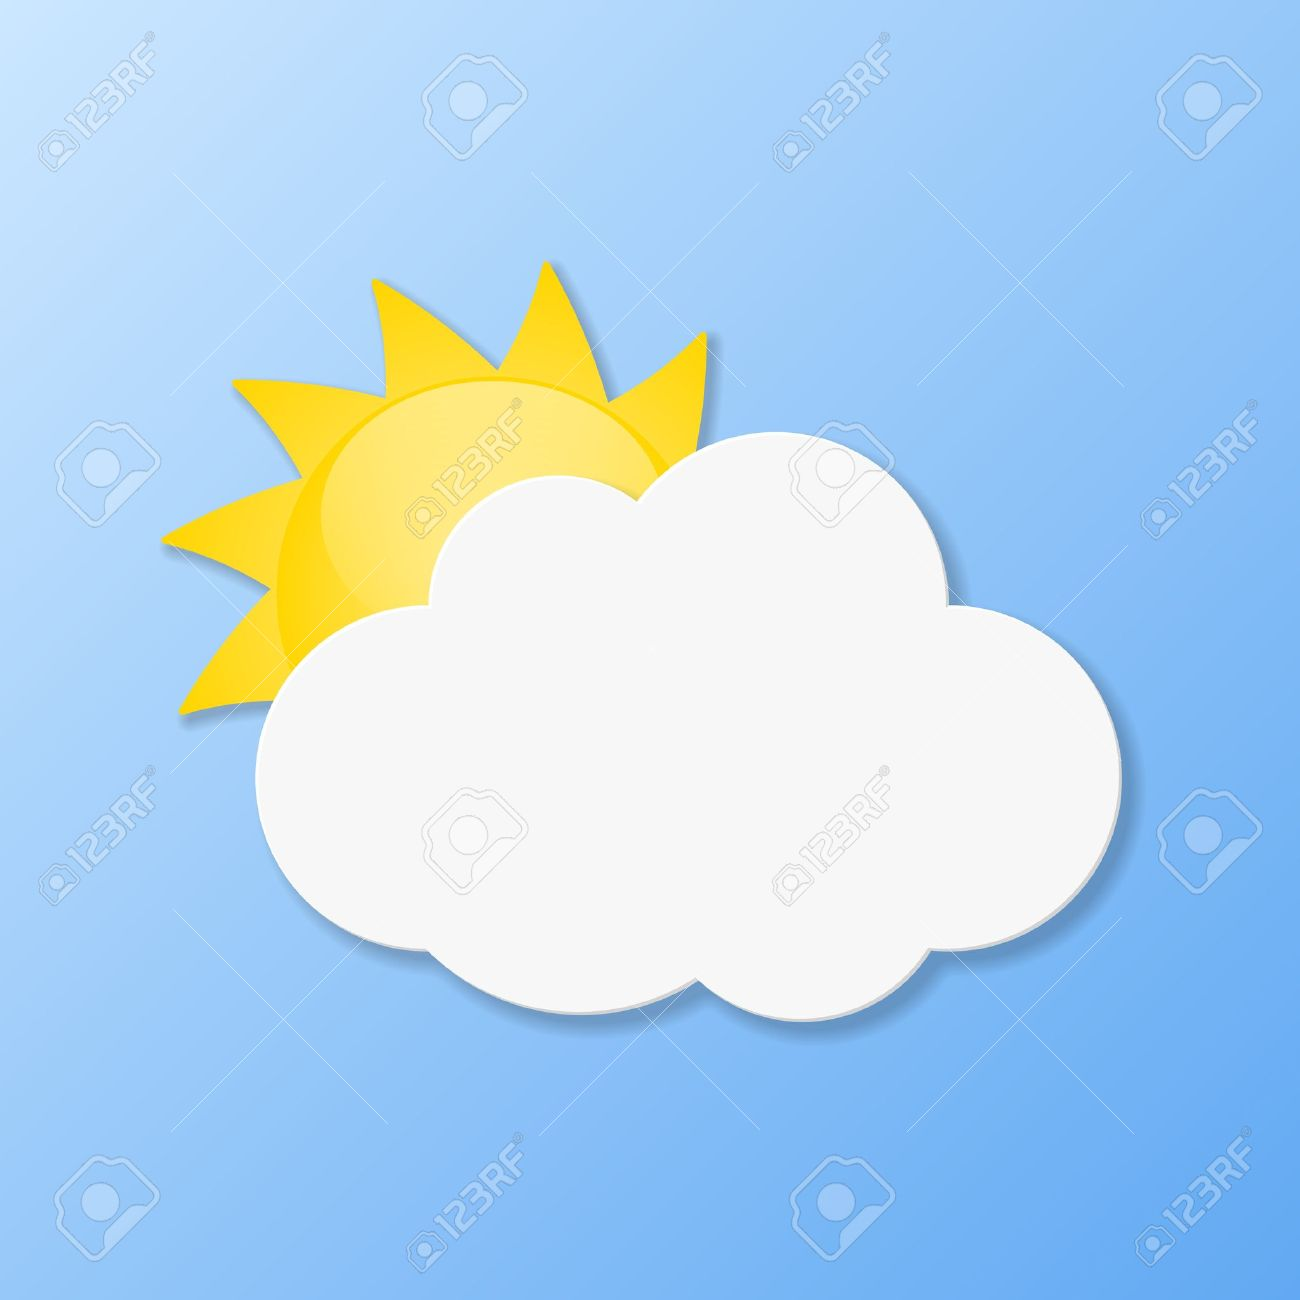 Weather Icons. Fair Weather Illustration. Royalty Free Cliparts.